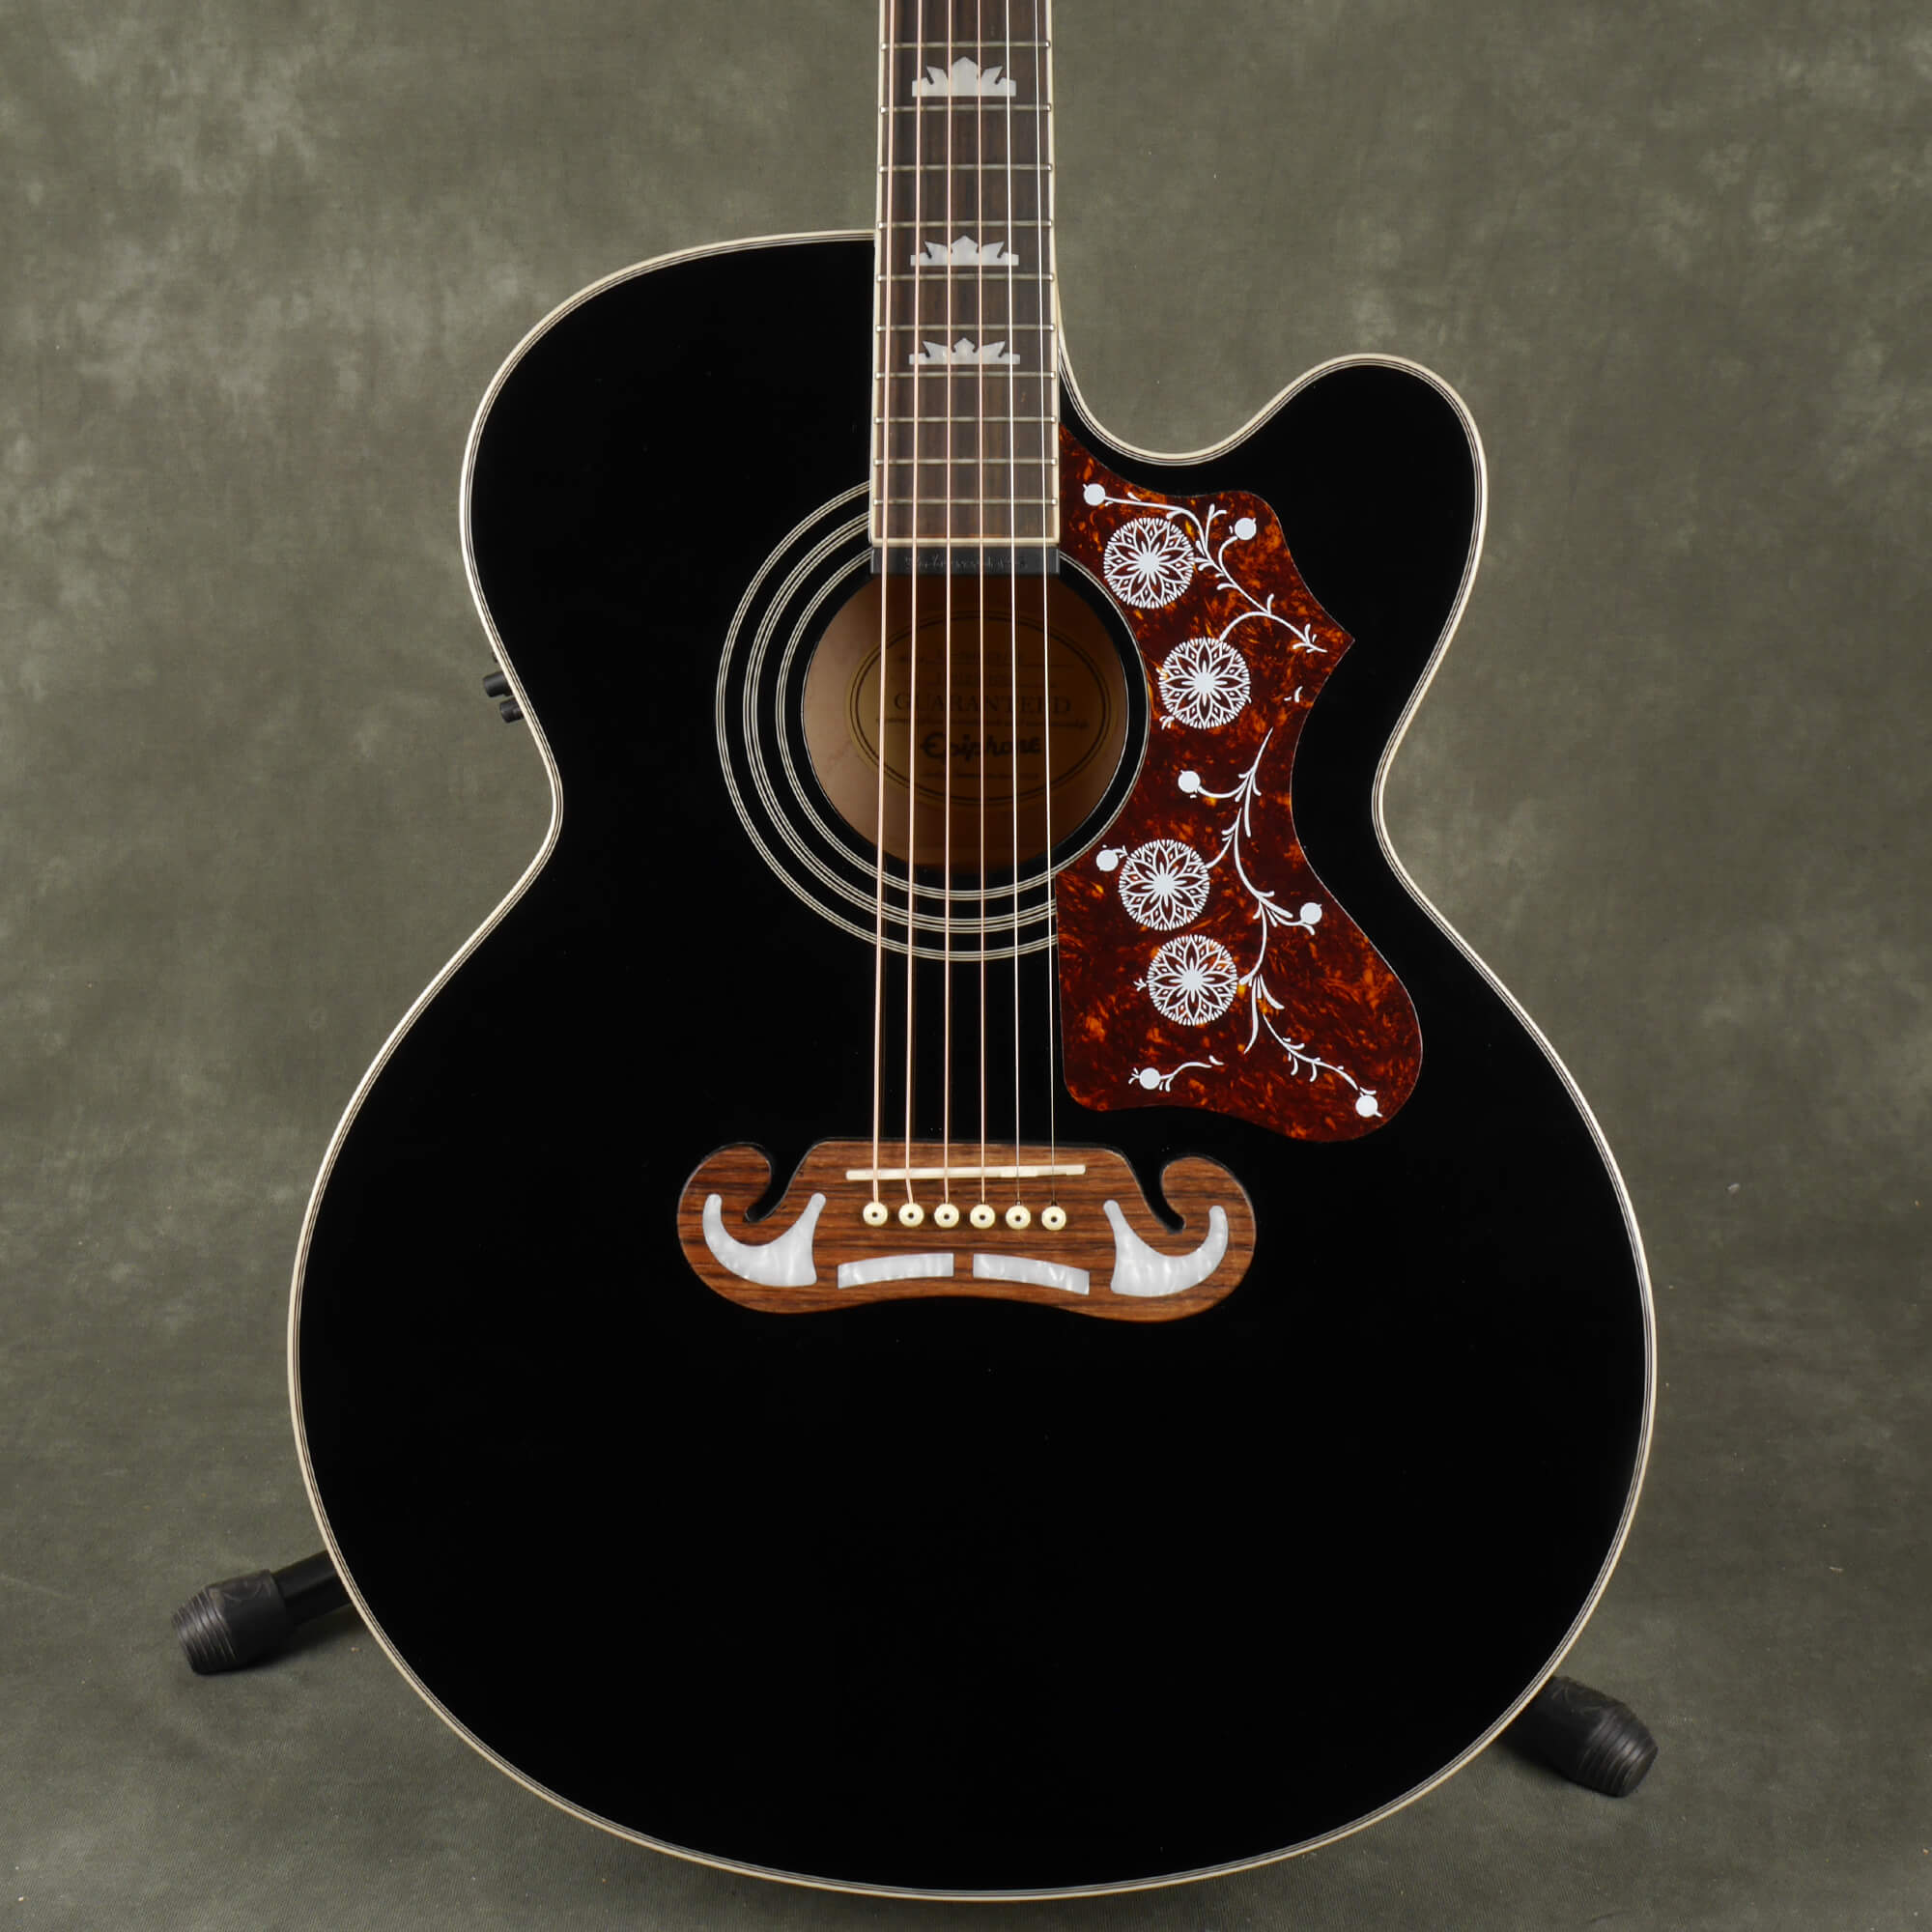 Epiphone EJ-200SCE Electro-Acoustic Guitar - Black - 2nd Hand